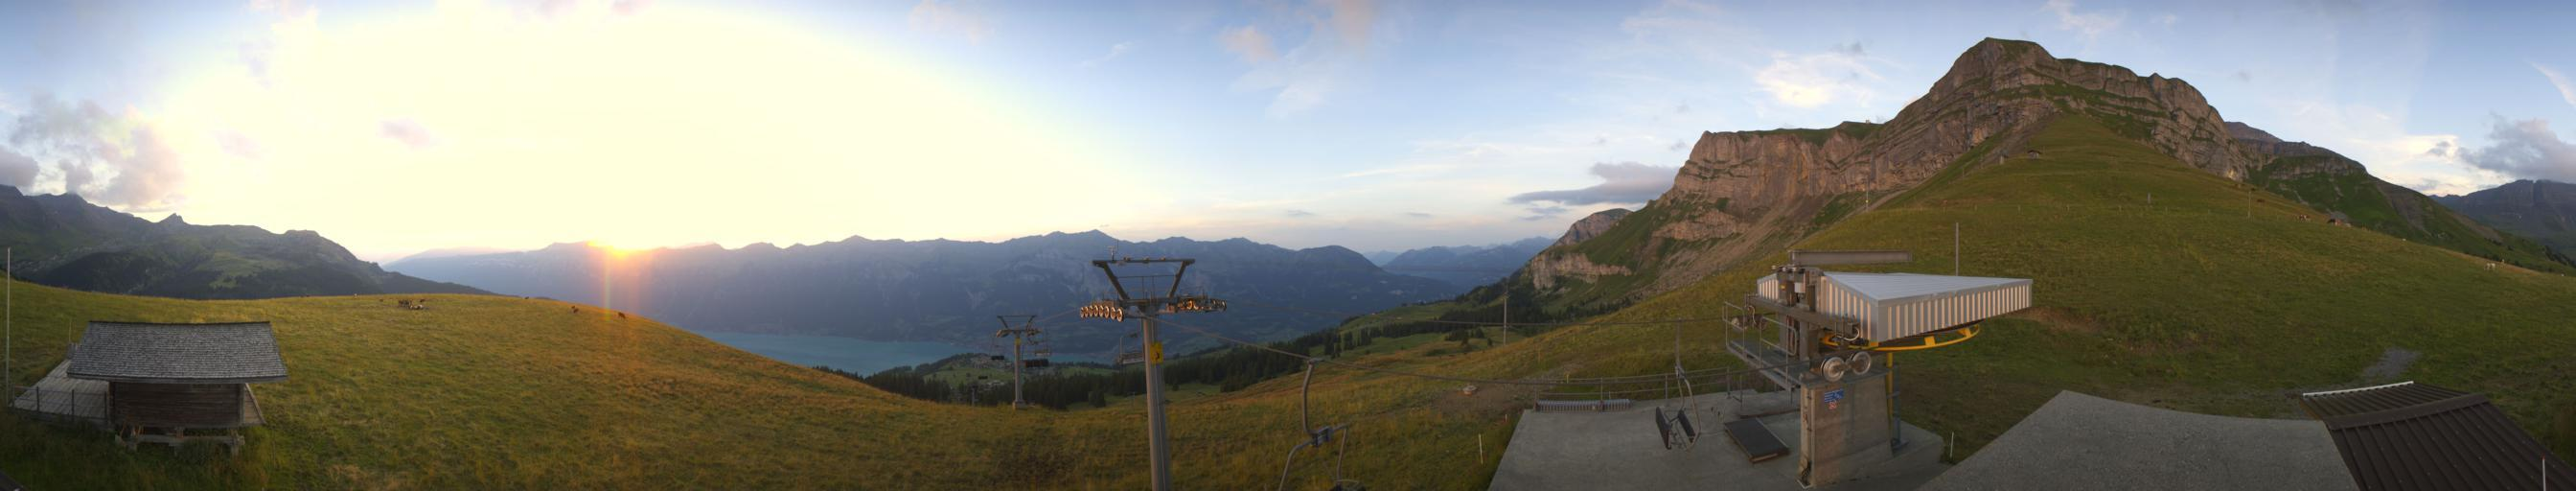 Preview Wetter Webcam Axalp (Berner Oberland, Brienzersee)